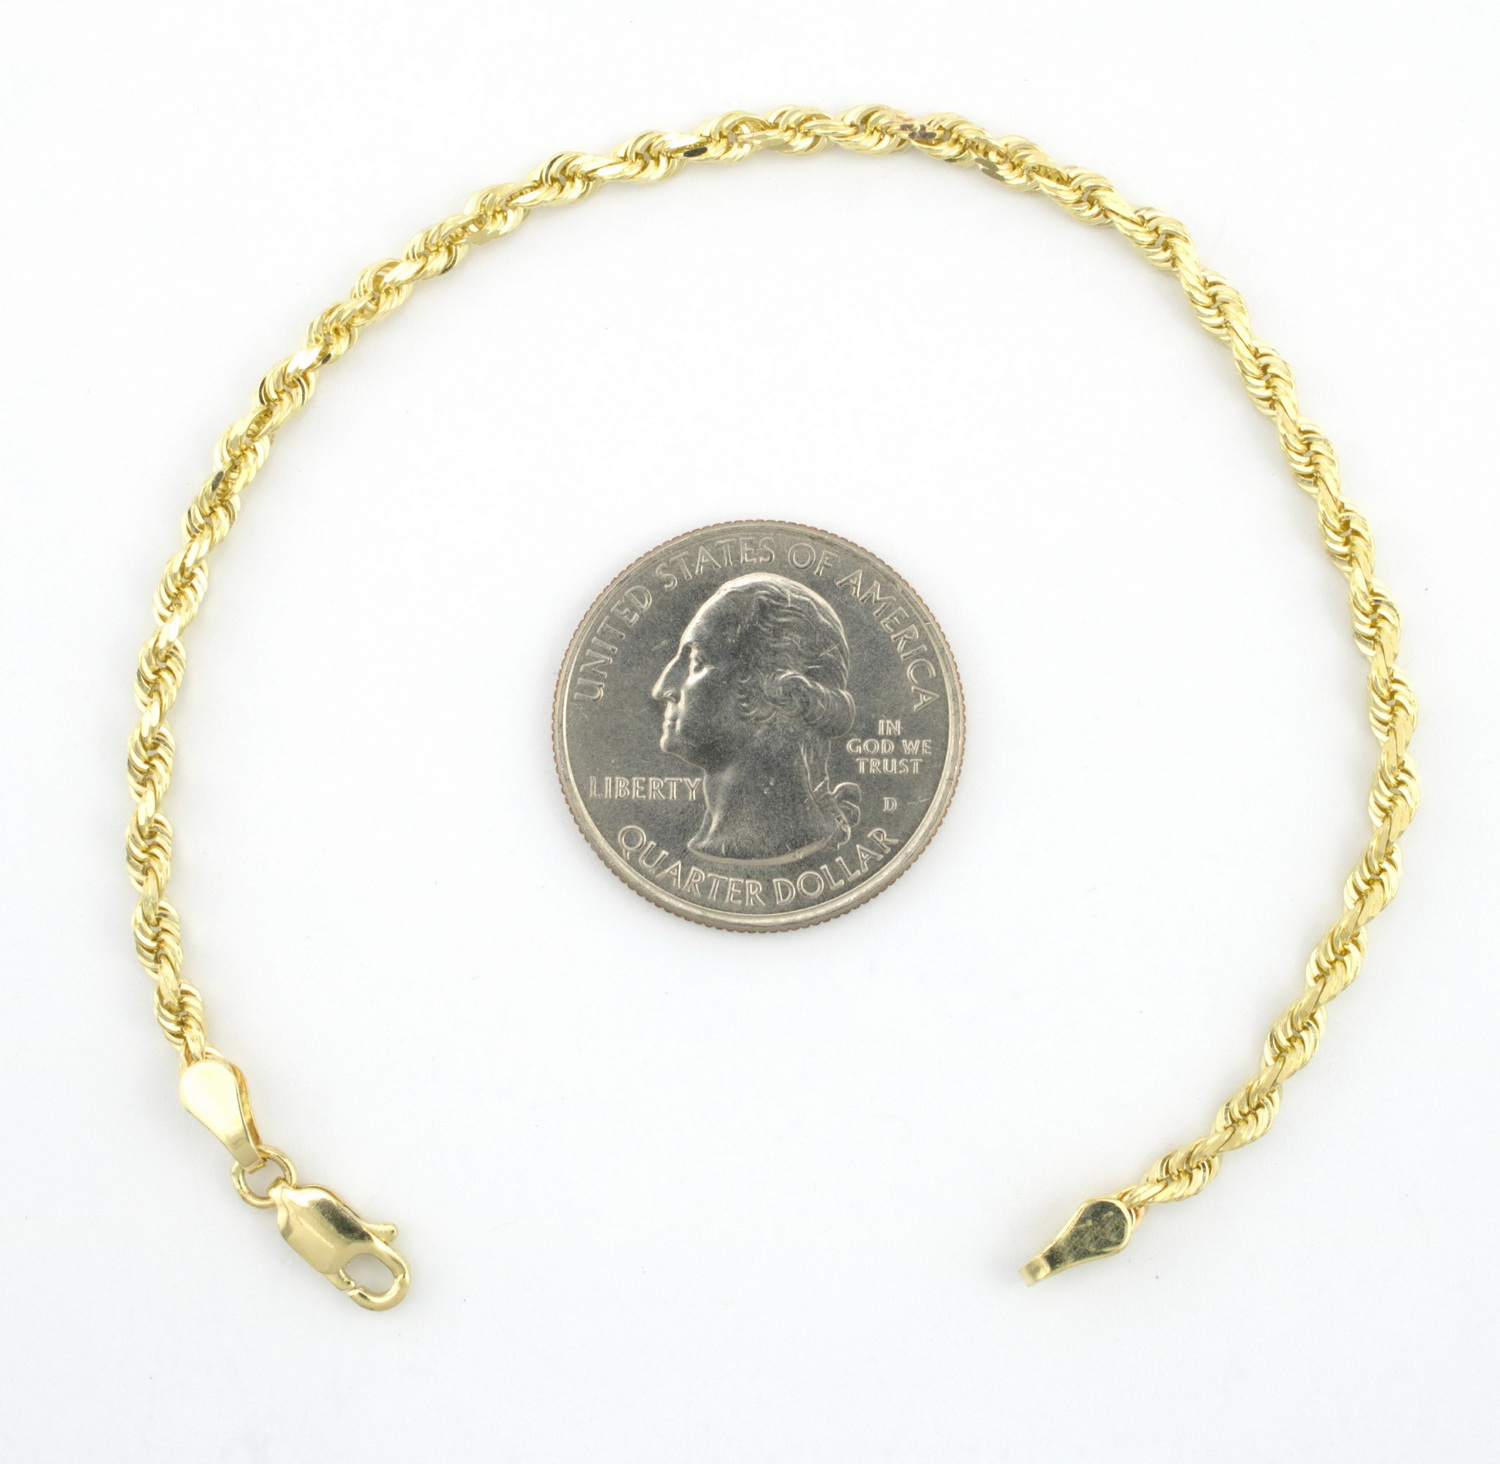 10K-Yellow-Gold-Real-3mm-Diamond-Cut-Rope-Chain-Bracelet-Lobster-Clasp-7-034-8-034-9-034 thumbnail 14